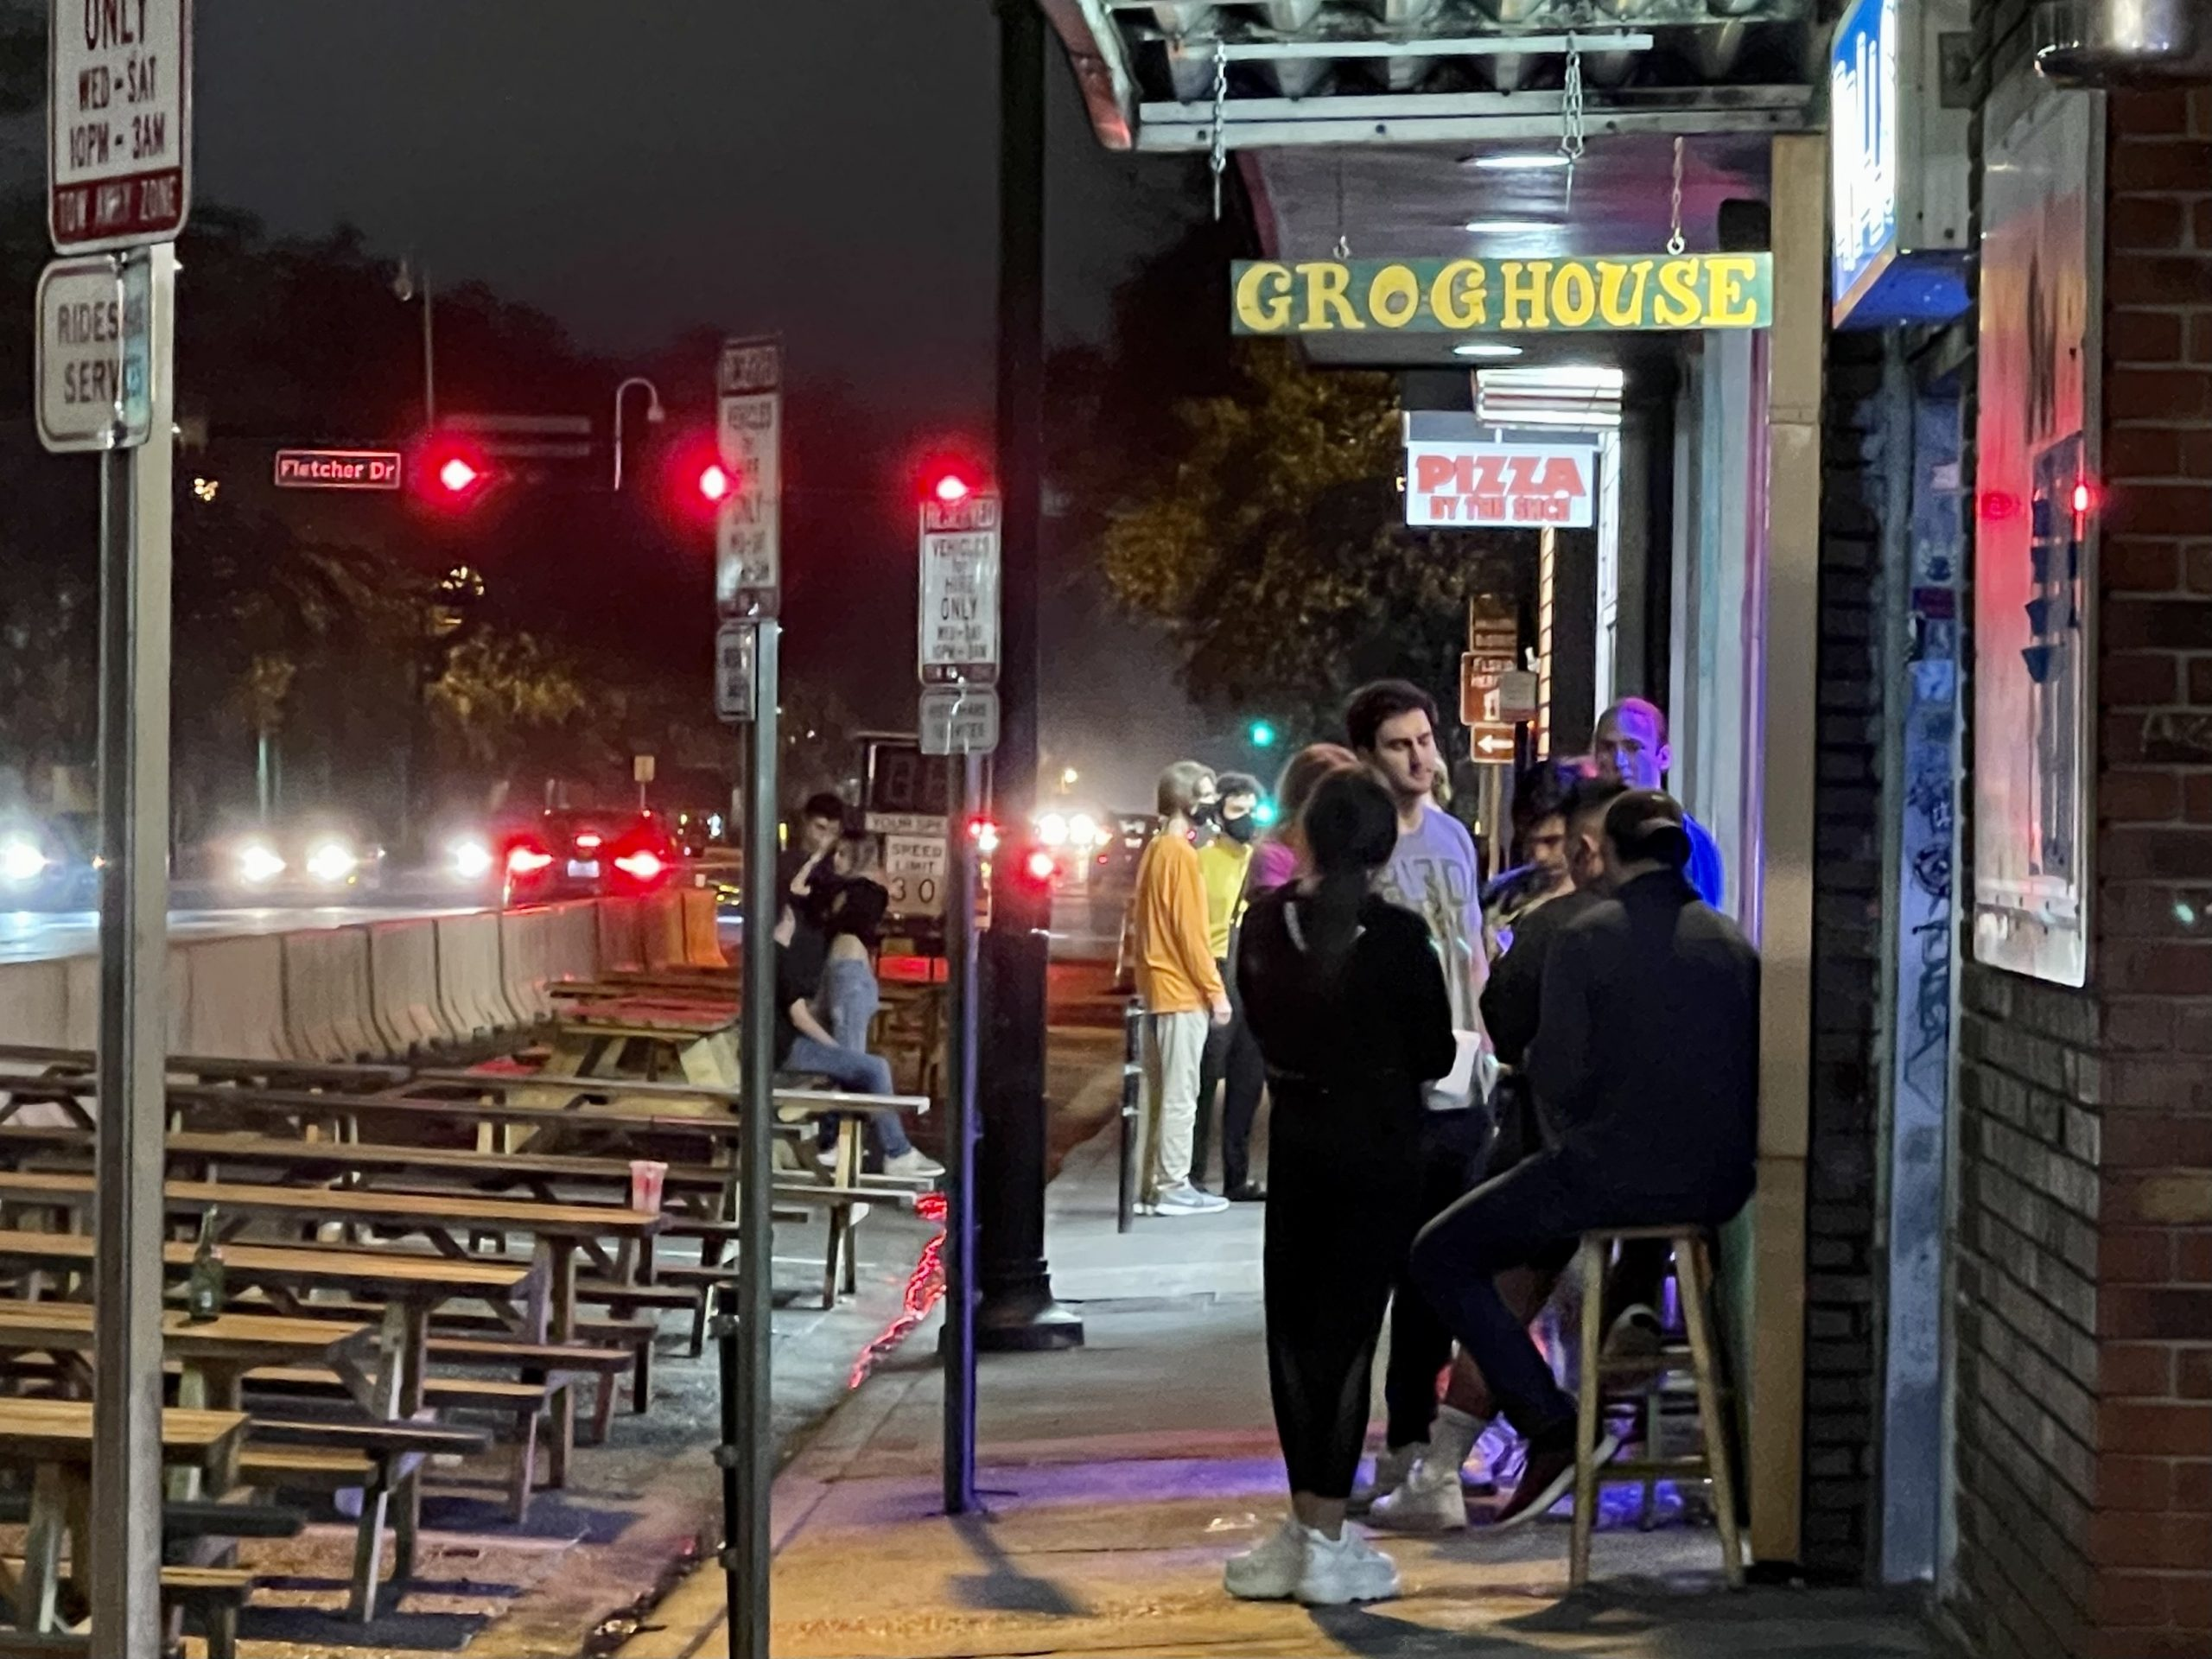 students without their masks on are lined up s line up outside Grog House Grill, a popular Midtown bar on University Avenue.